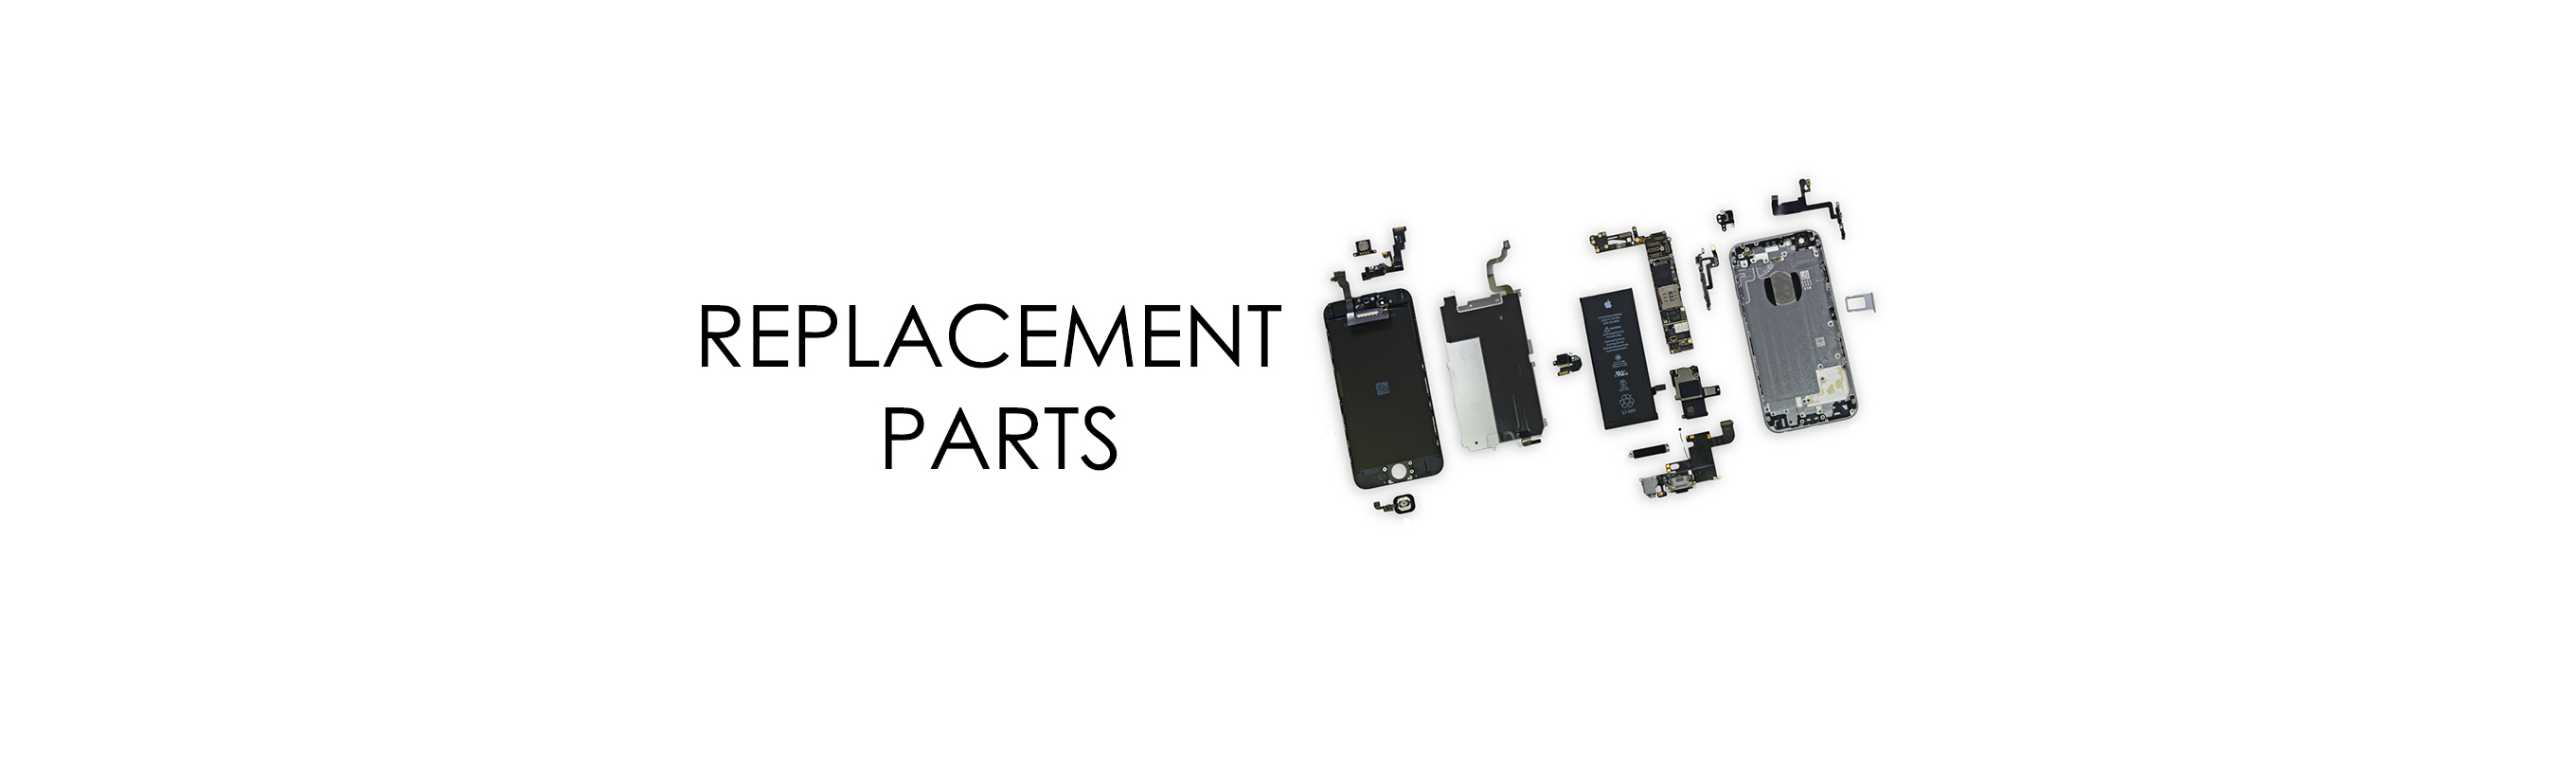 Replacement Parts for iPhone 7 Plus